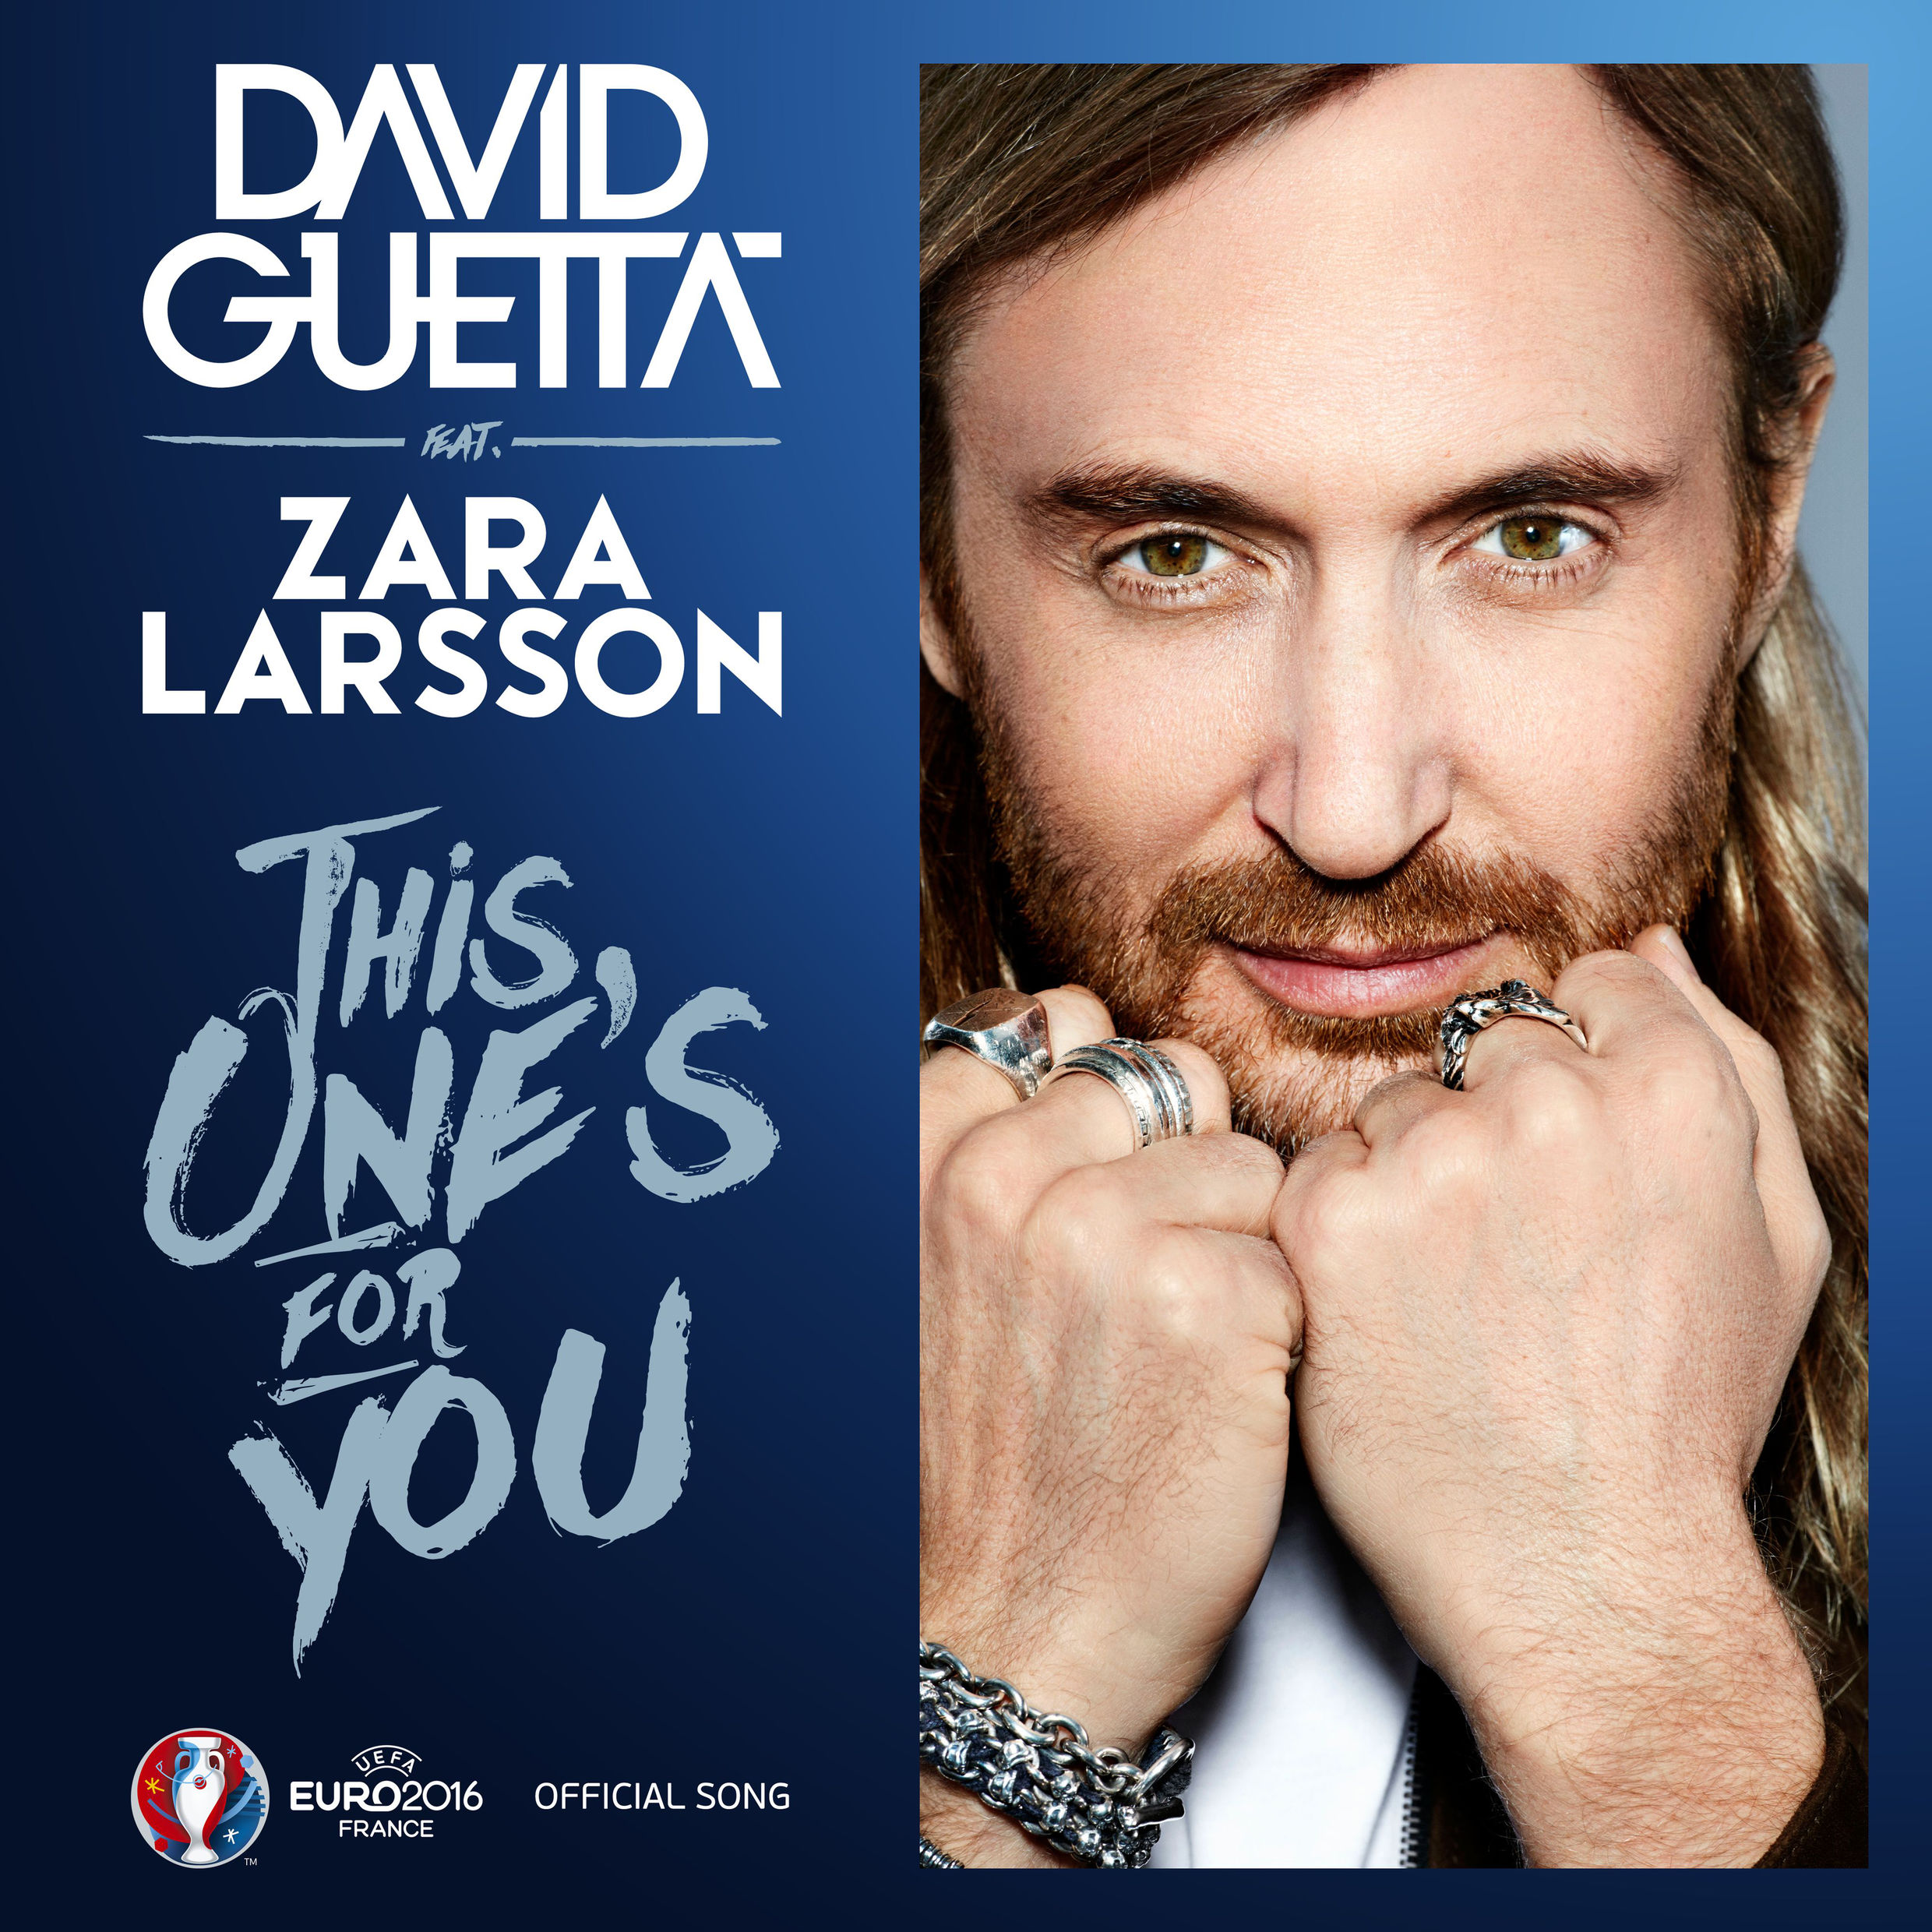 david-guetta-zara-larsson-this-ones-for-you-new-song-uefa-euro-theme-stream.jpg